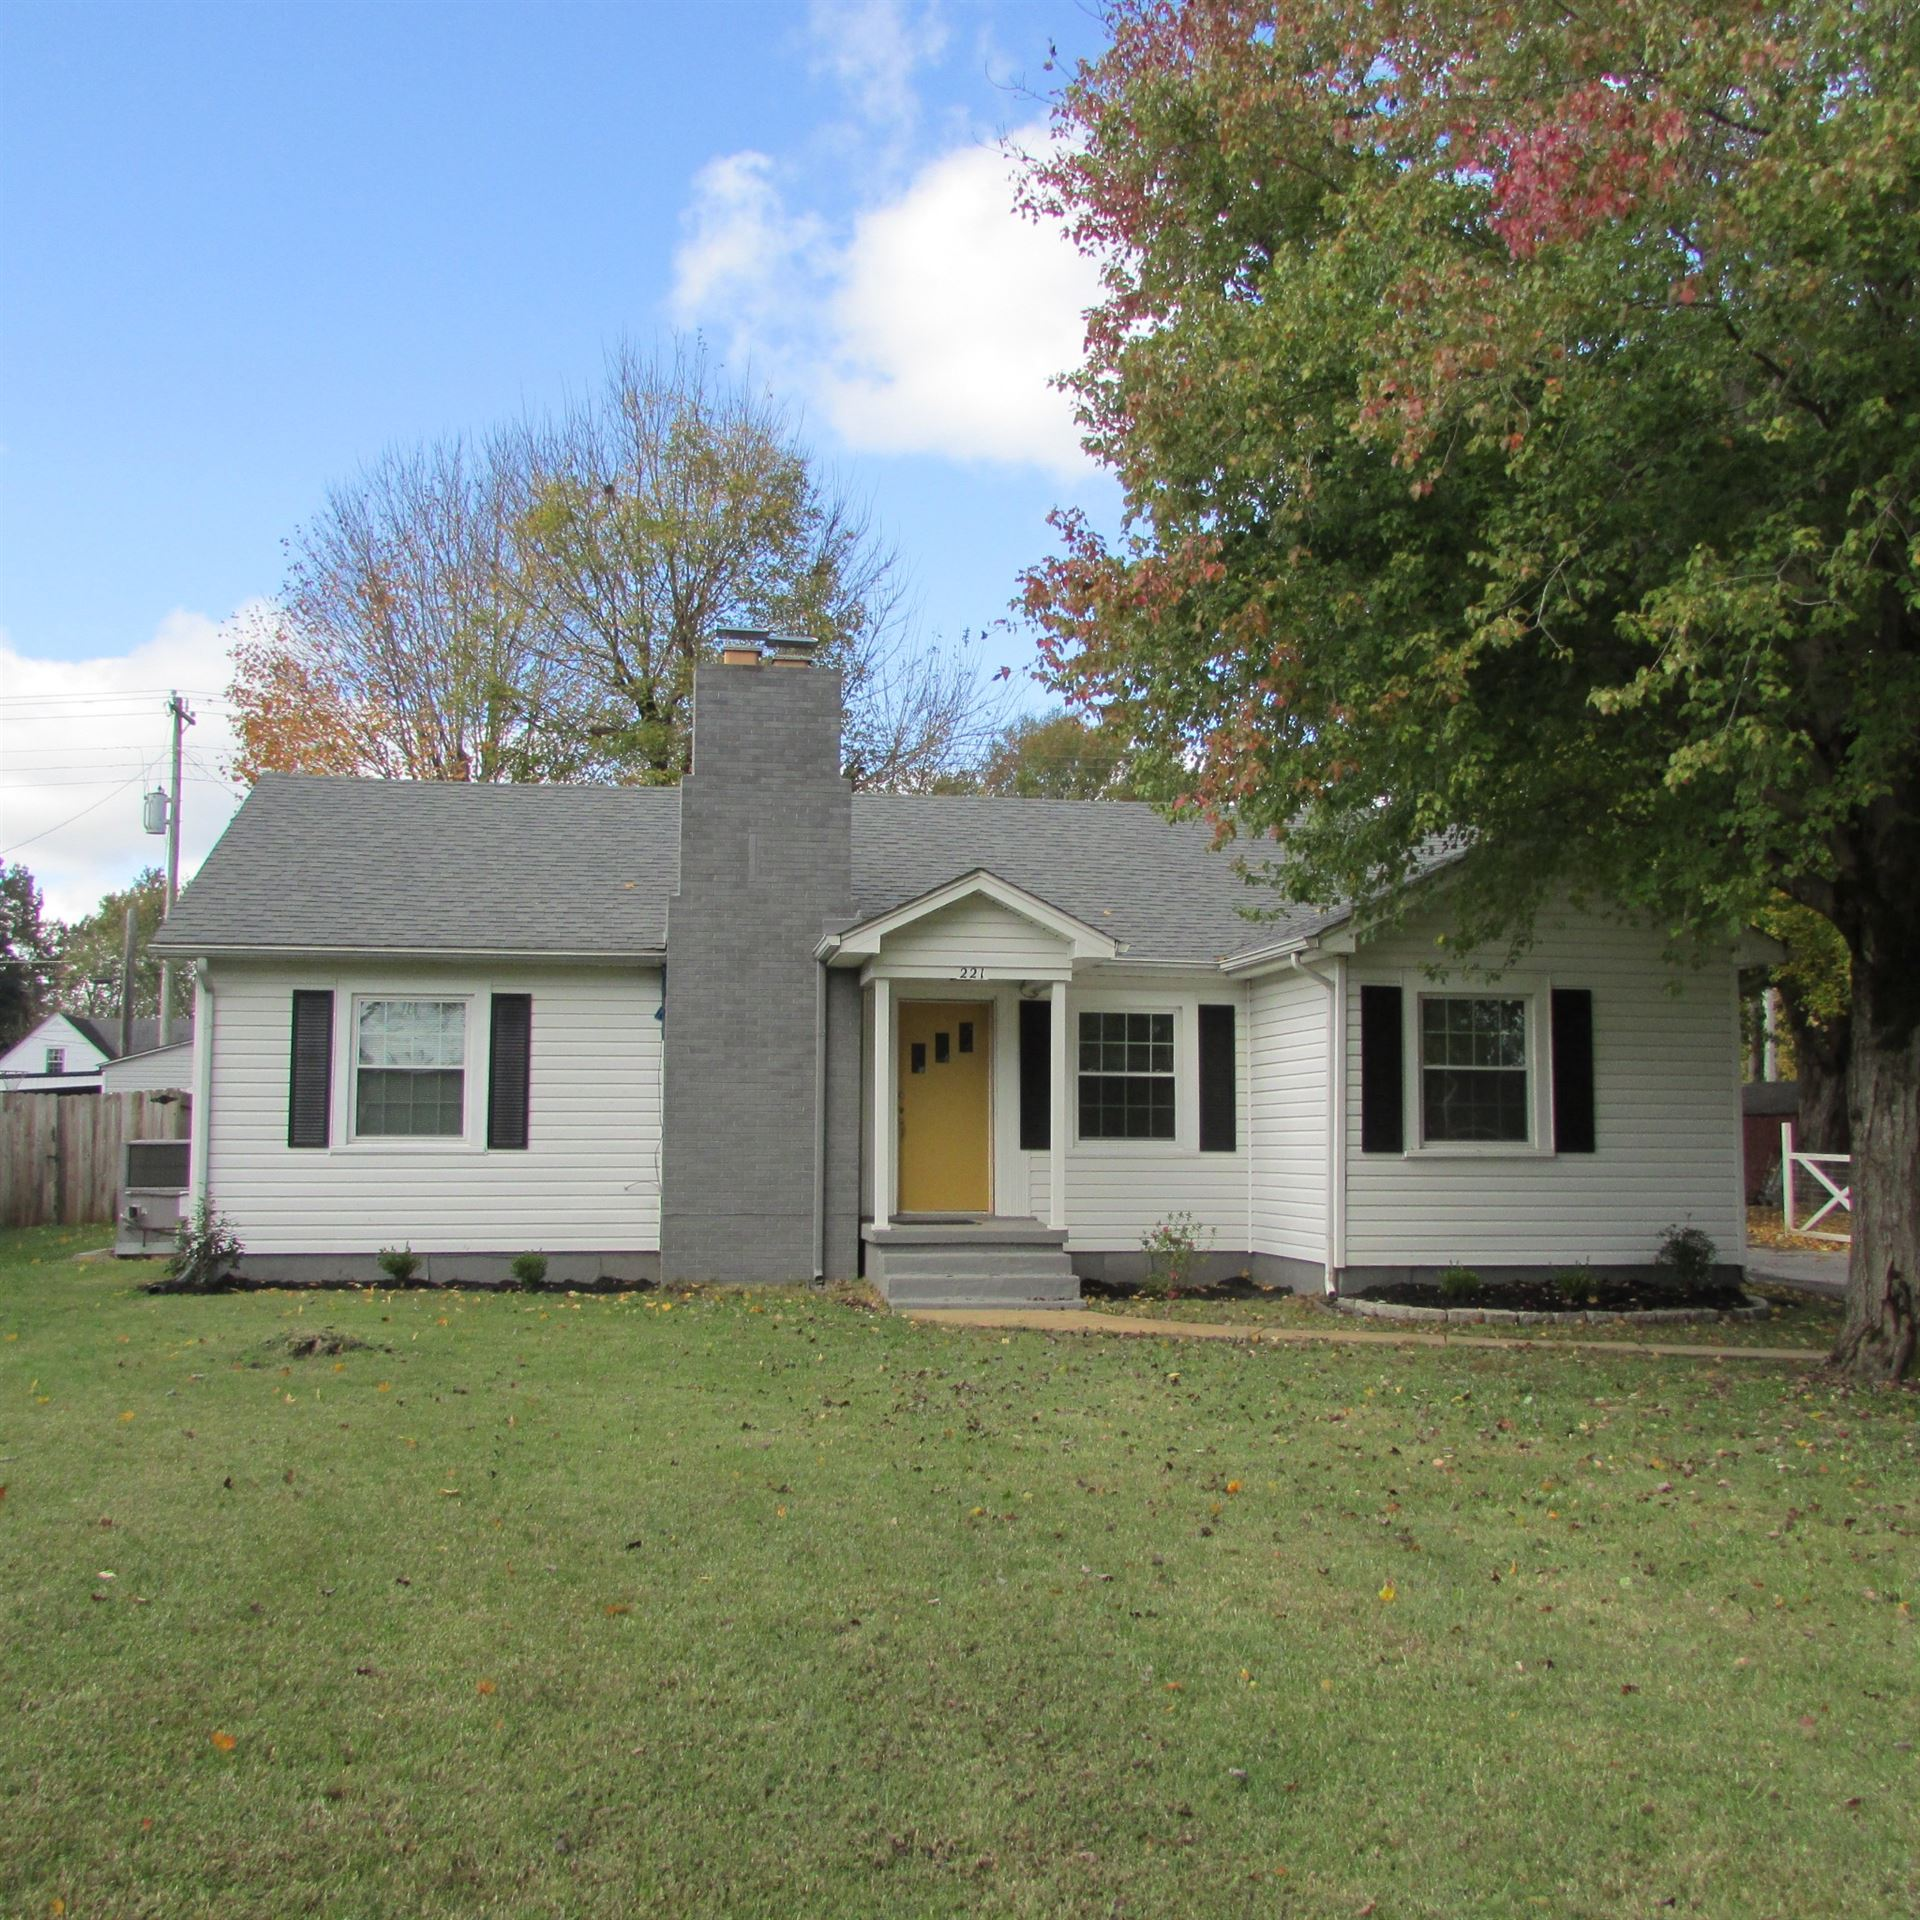 Photo of 221 Parkes Ave N, Lawrenceburg, TN 38464 (MLS # 2202561)